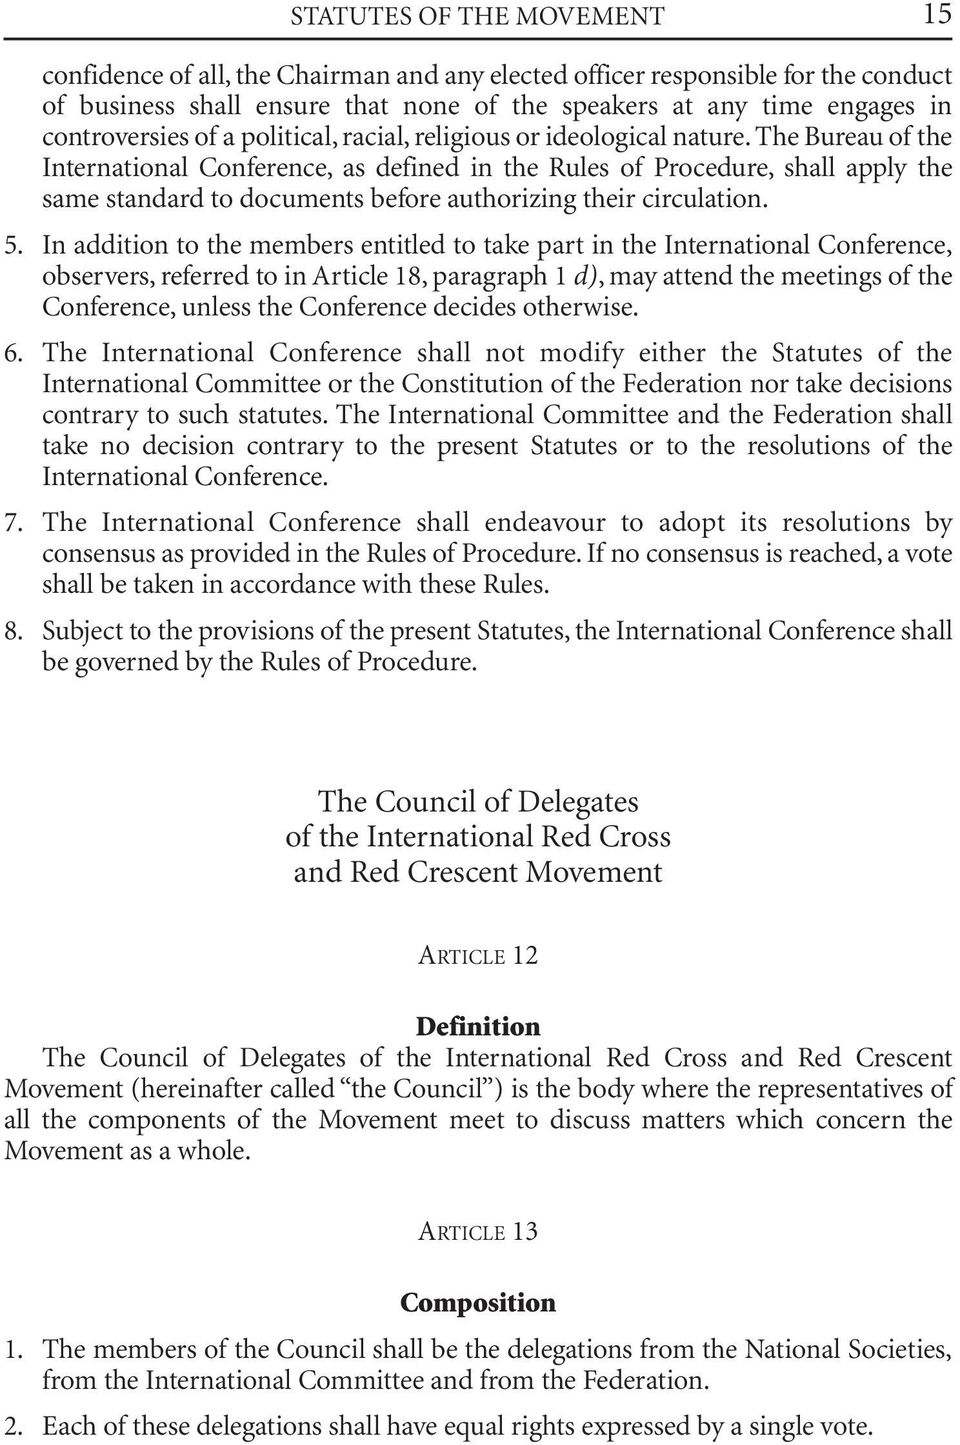 The Bureau of the International Conference, as defined in the Rules of Procedure, shall apply the same standard to documents before authorizing their circulation. 5.